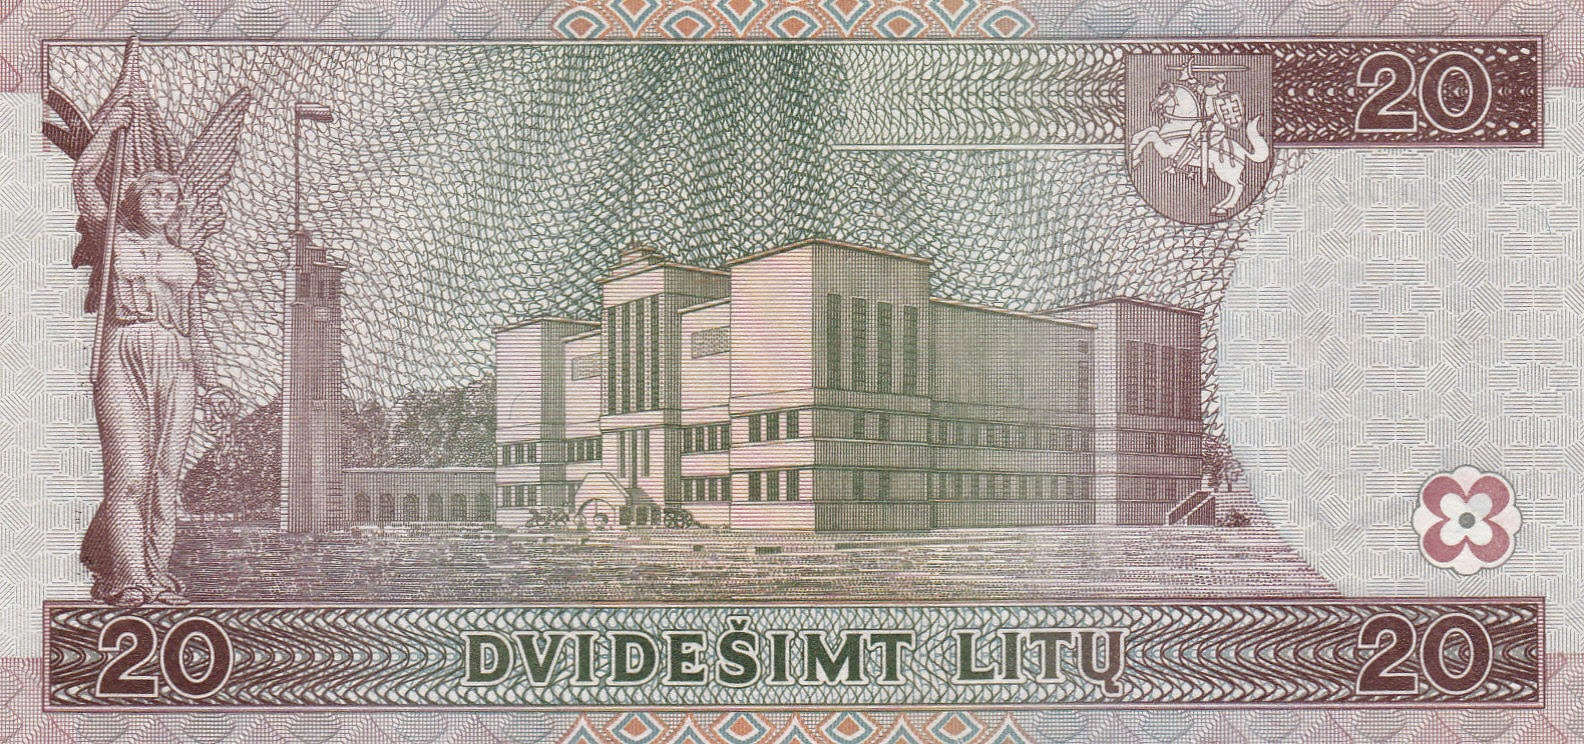 Banknotes of Lithuania 20 Litu bank note